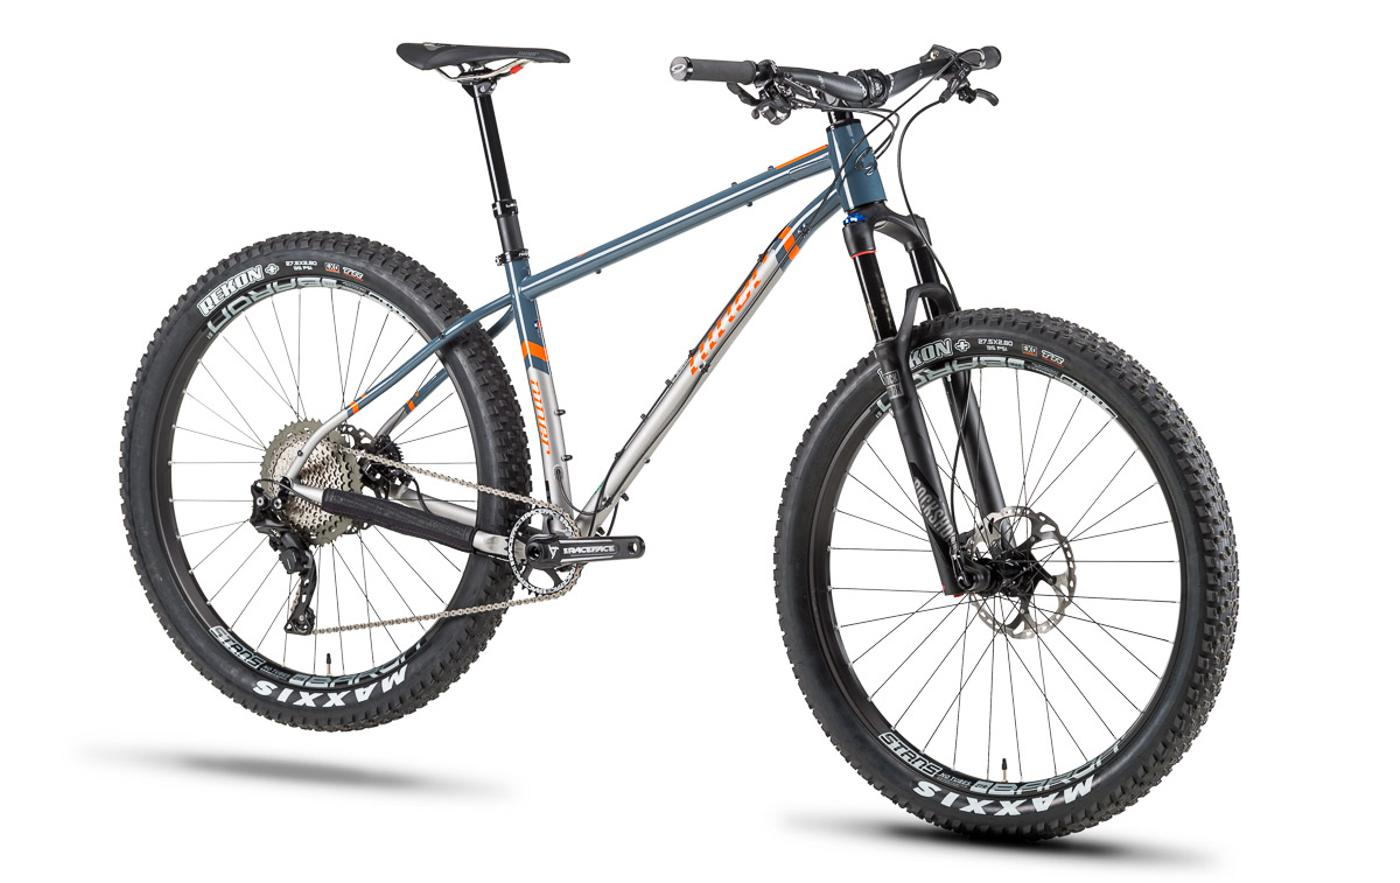 The New Niner Sir 9 Hardtail MTB is made from Reynolds 853